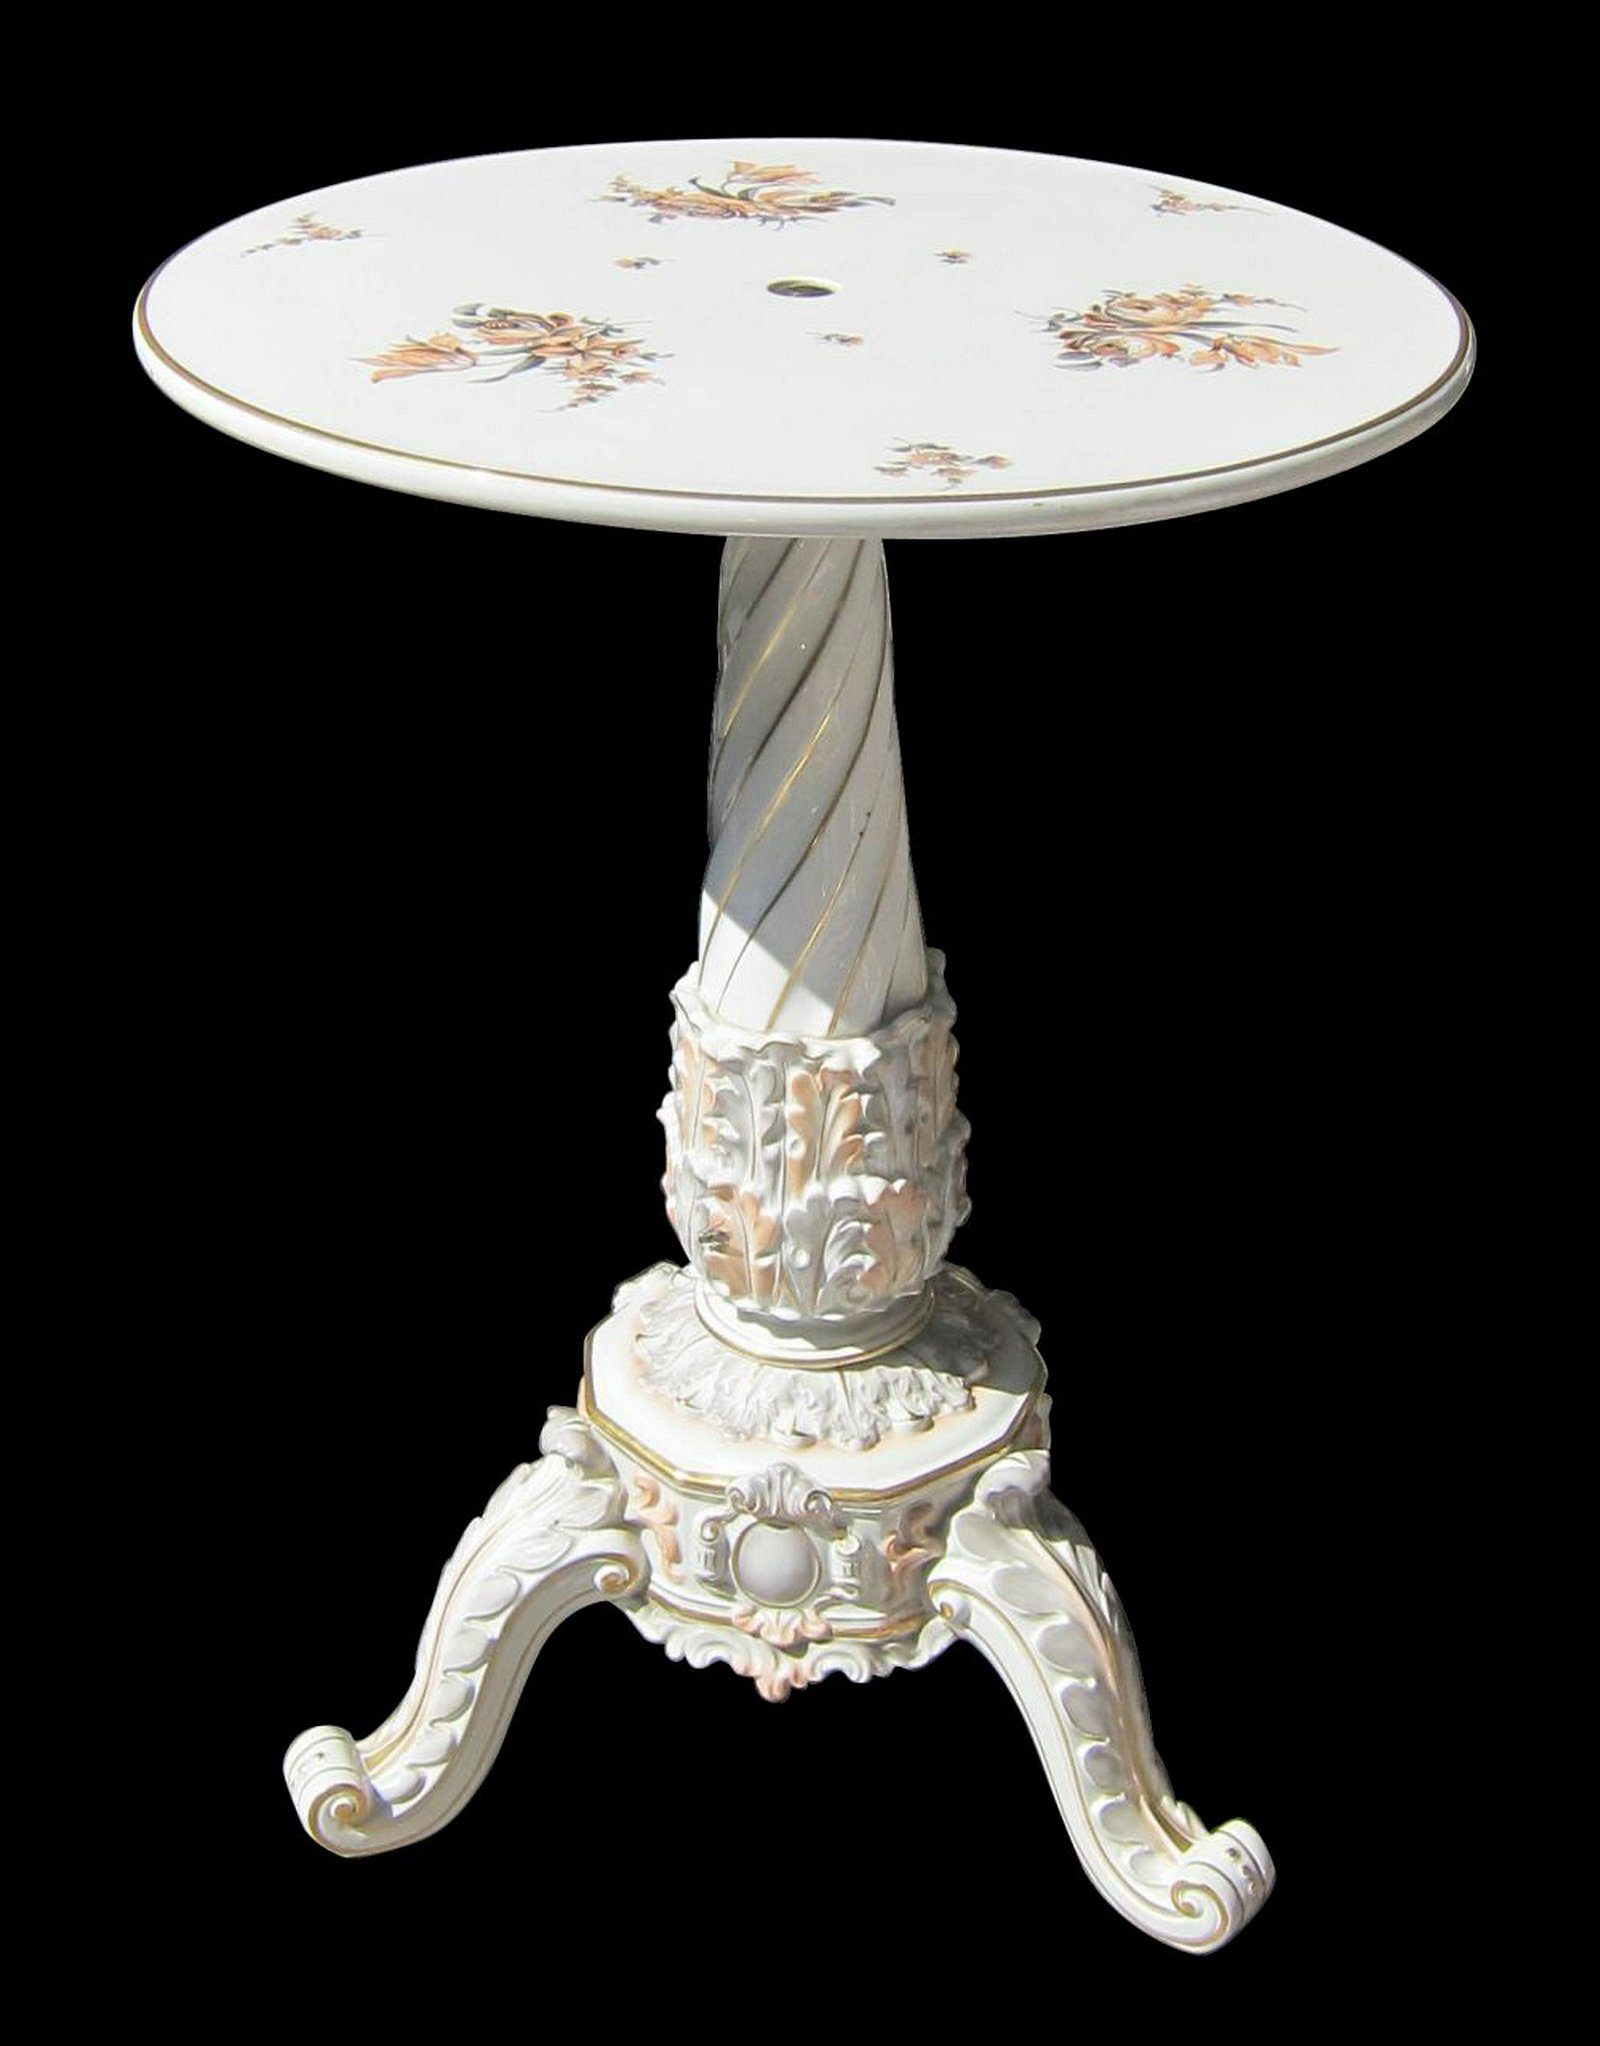 Capodimonte porcelain table